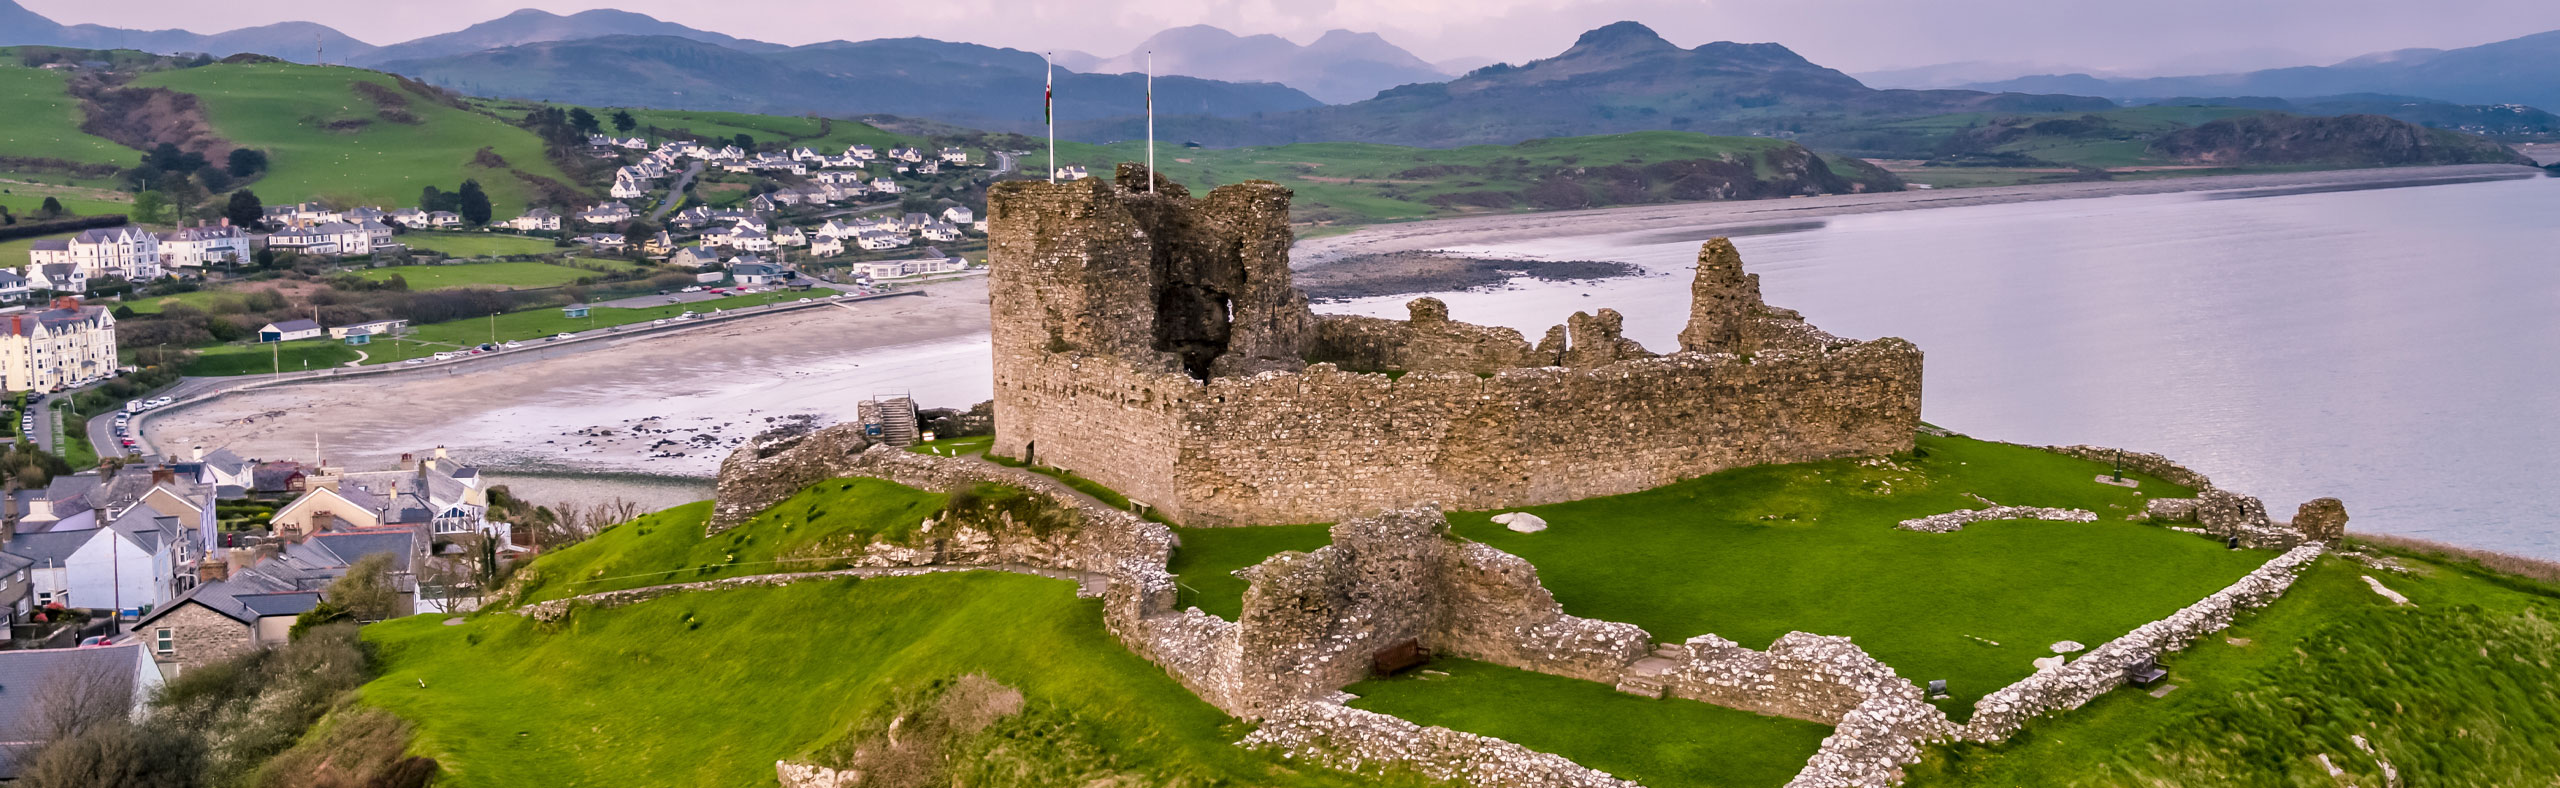 Stunning Image from the Castle in Criccieth